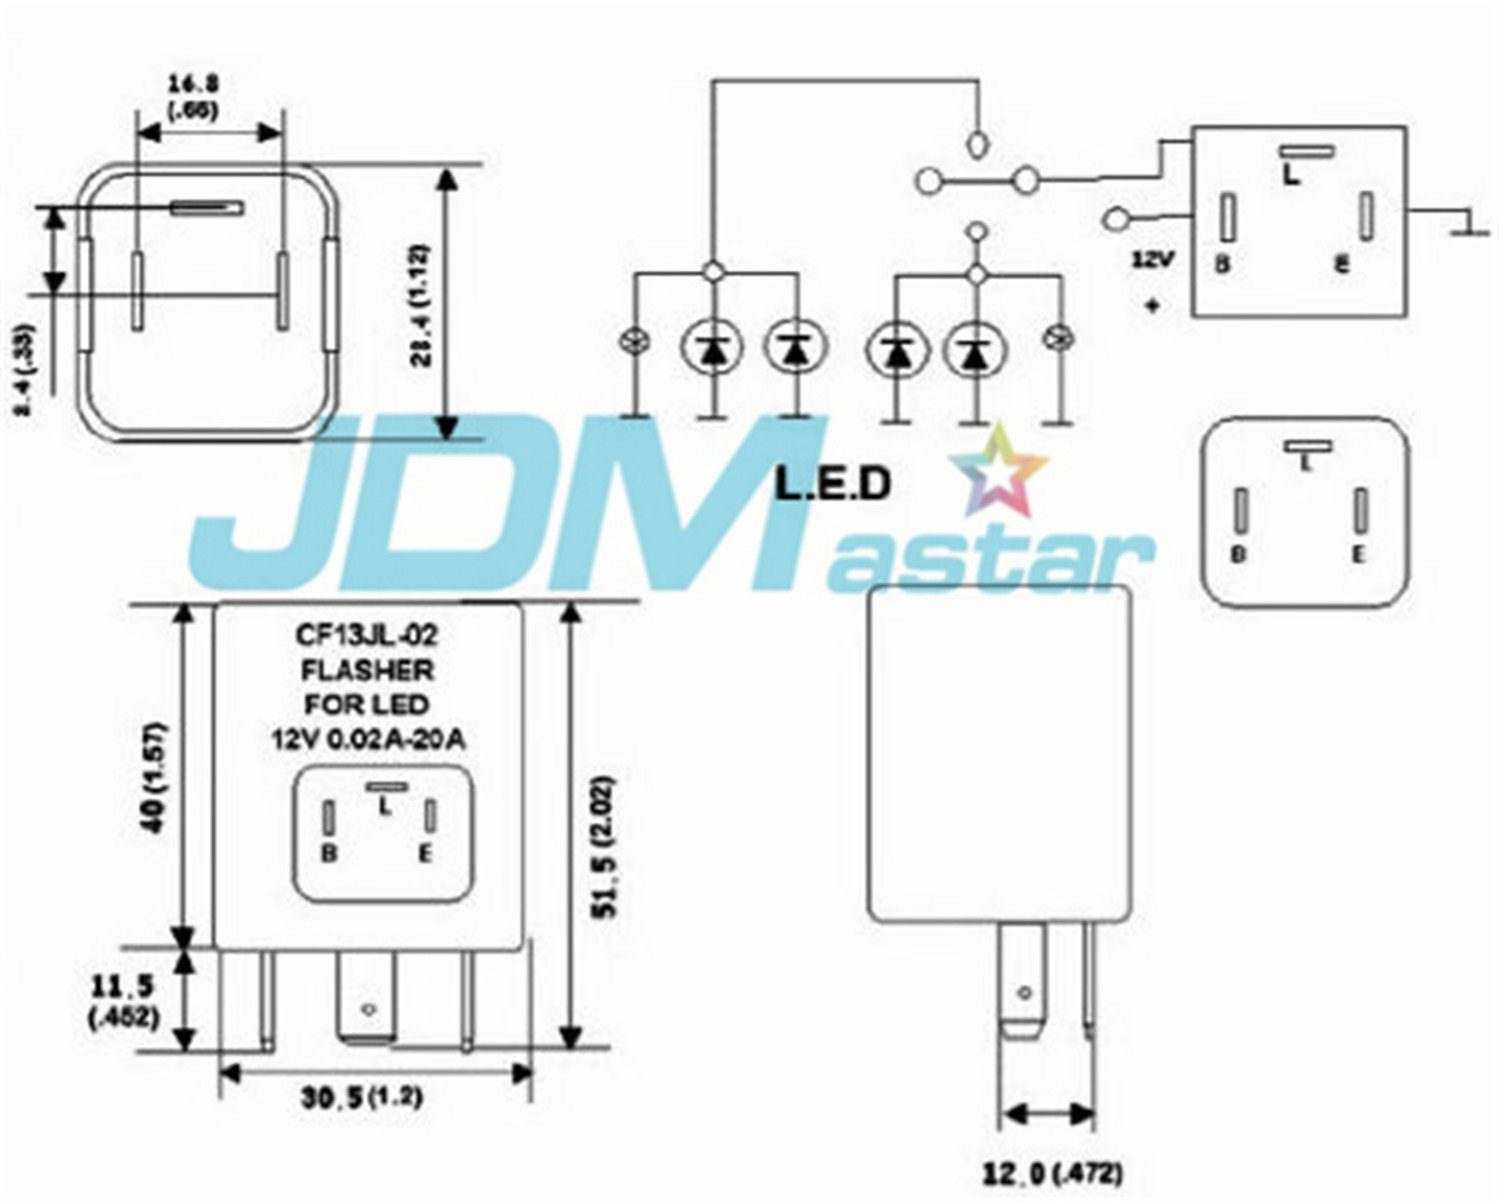 4 Pin Flasher Unit Wiring Diagram